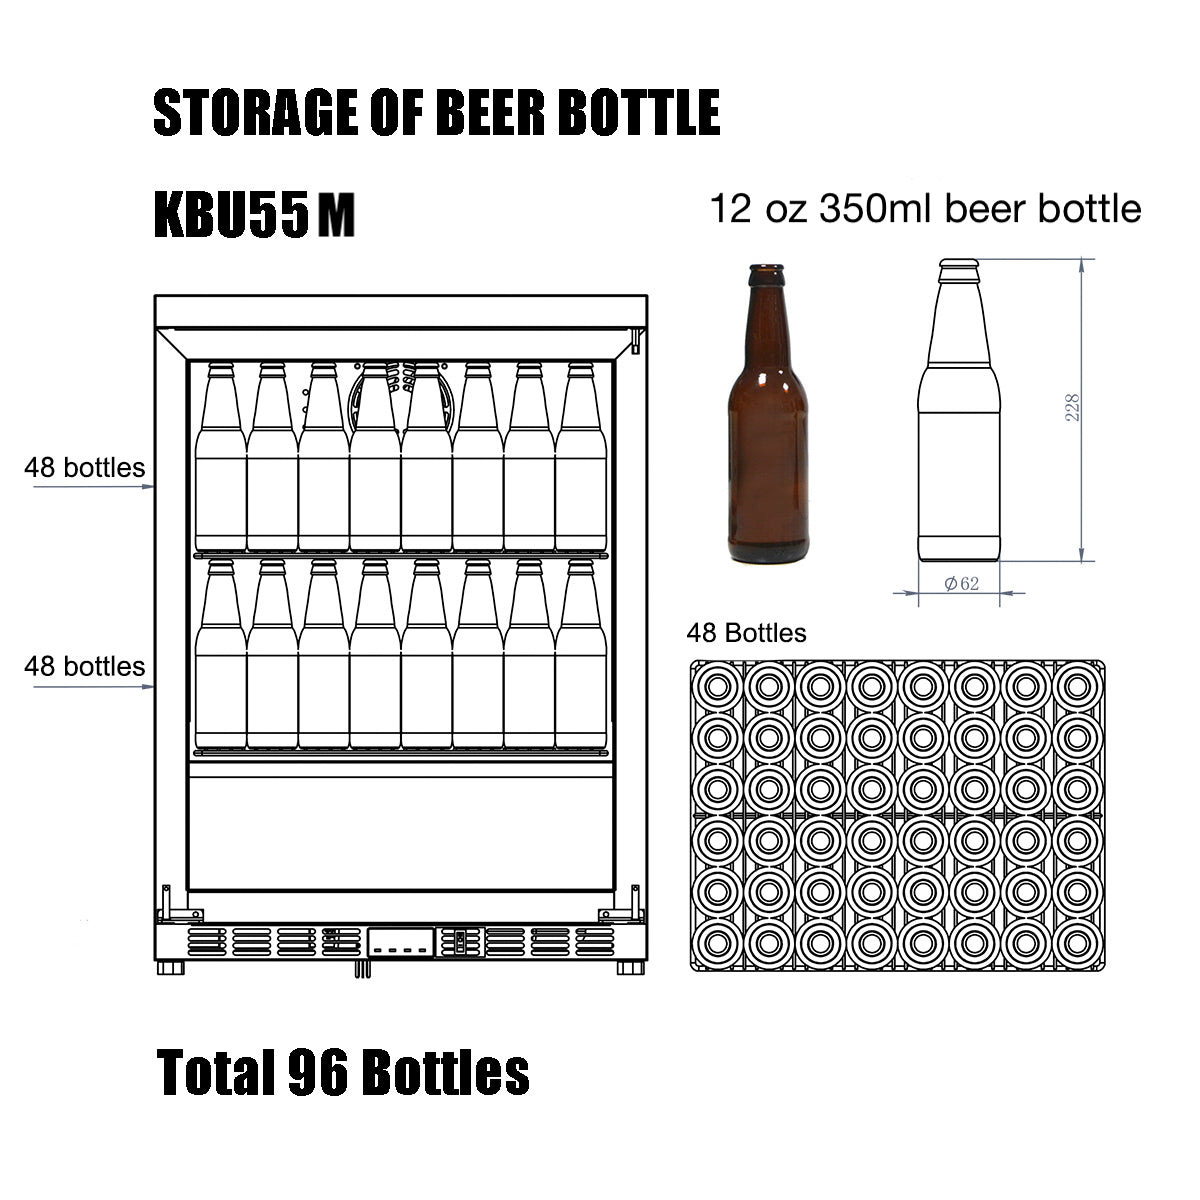 KBU55 Storage of Beer Bottle